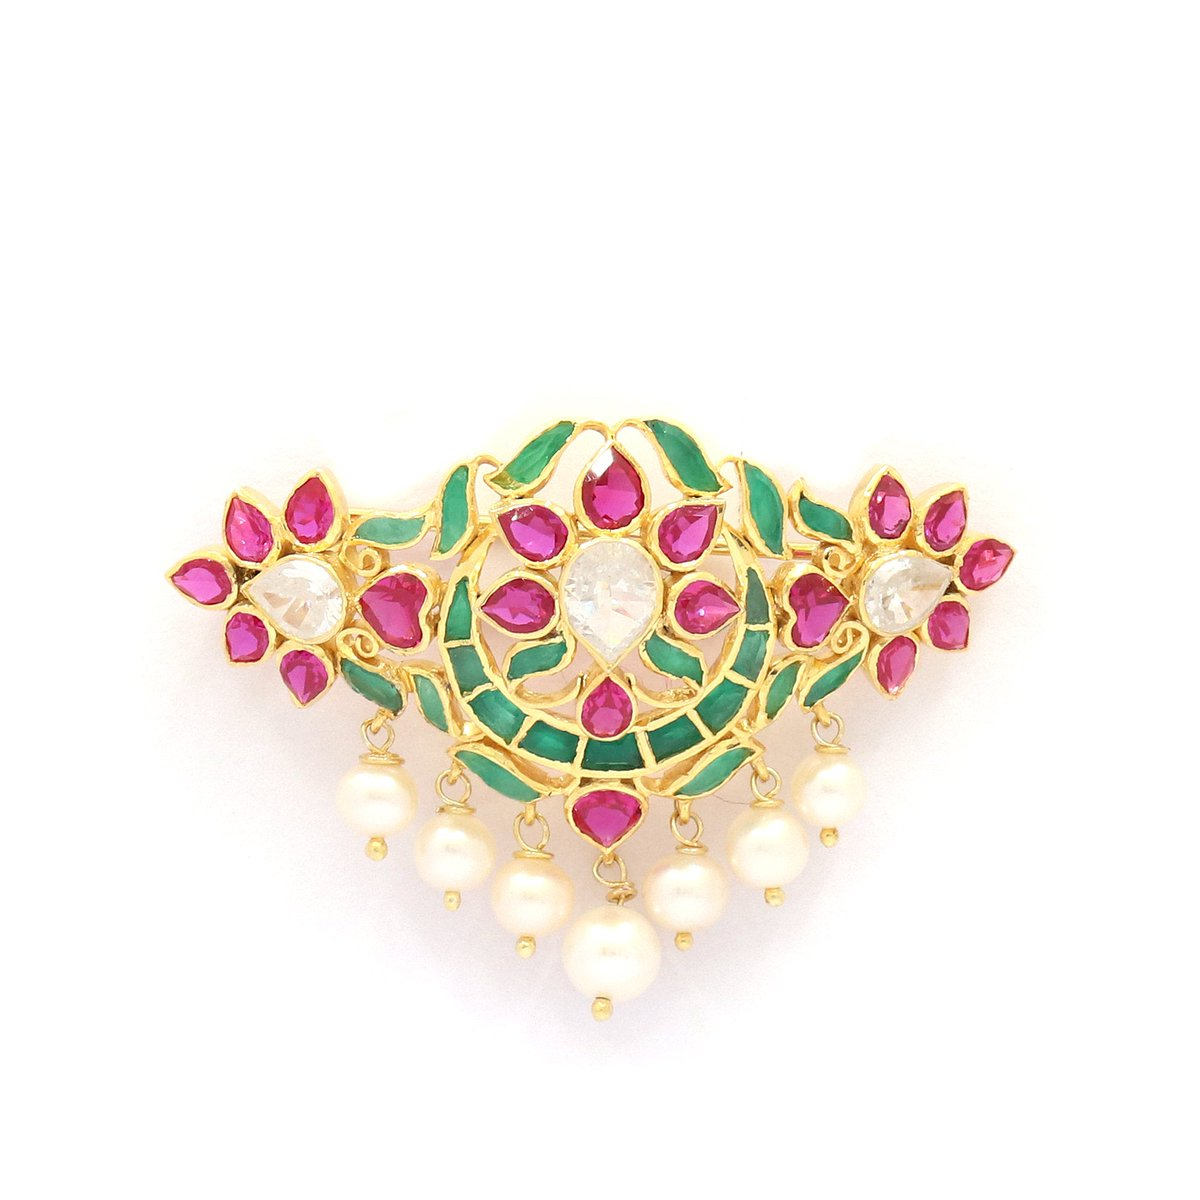 Excited to share the latest addition to my #etsy shop: Green Onyx Hydro Ruby Pearl CZ 925 Sterling Silver Gold Plated Saree Pin Brooch Wedding Jewellery Festive Wear Party Wear  #anniversary #thanksgiving #luck #unisexadults #stone #midcentury #p